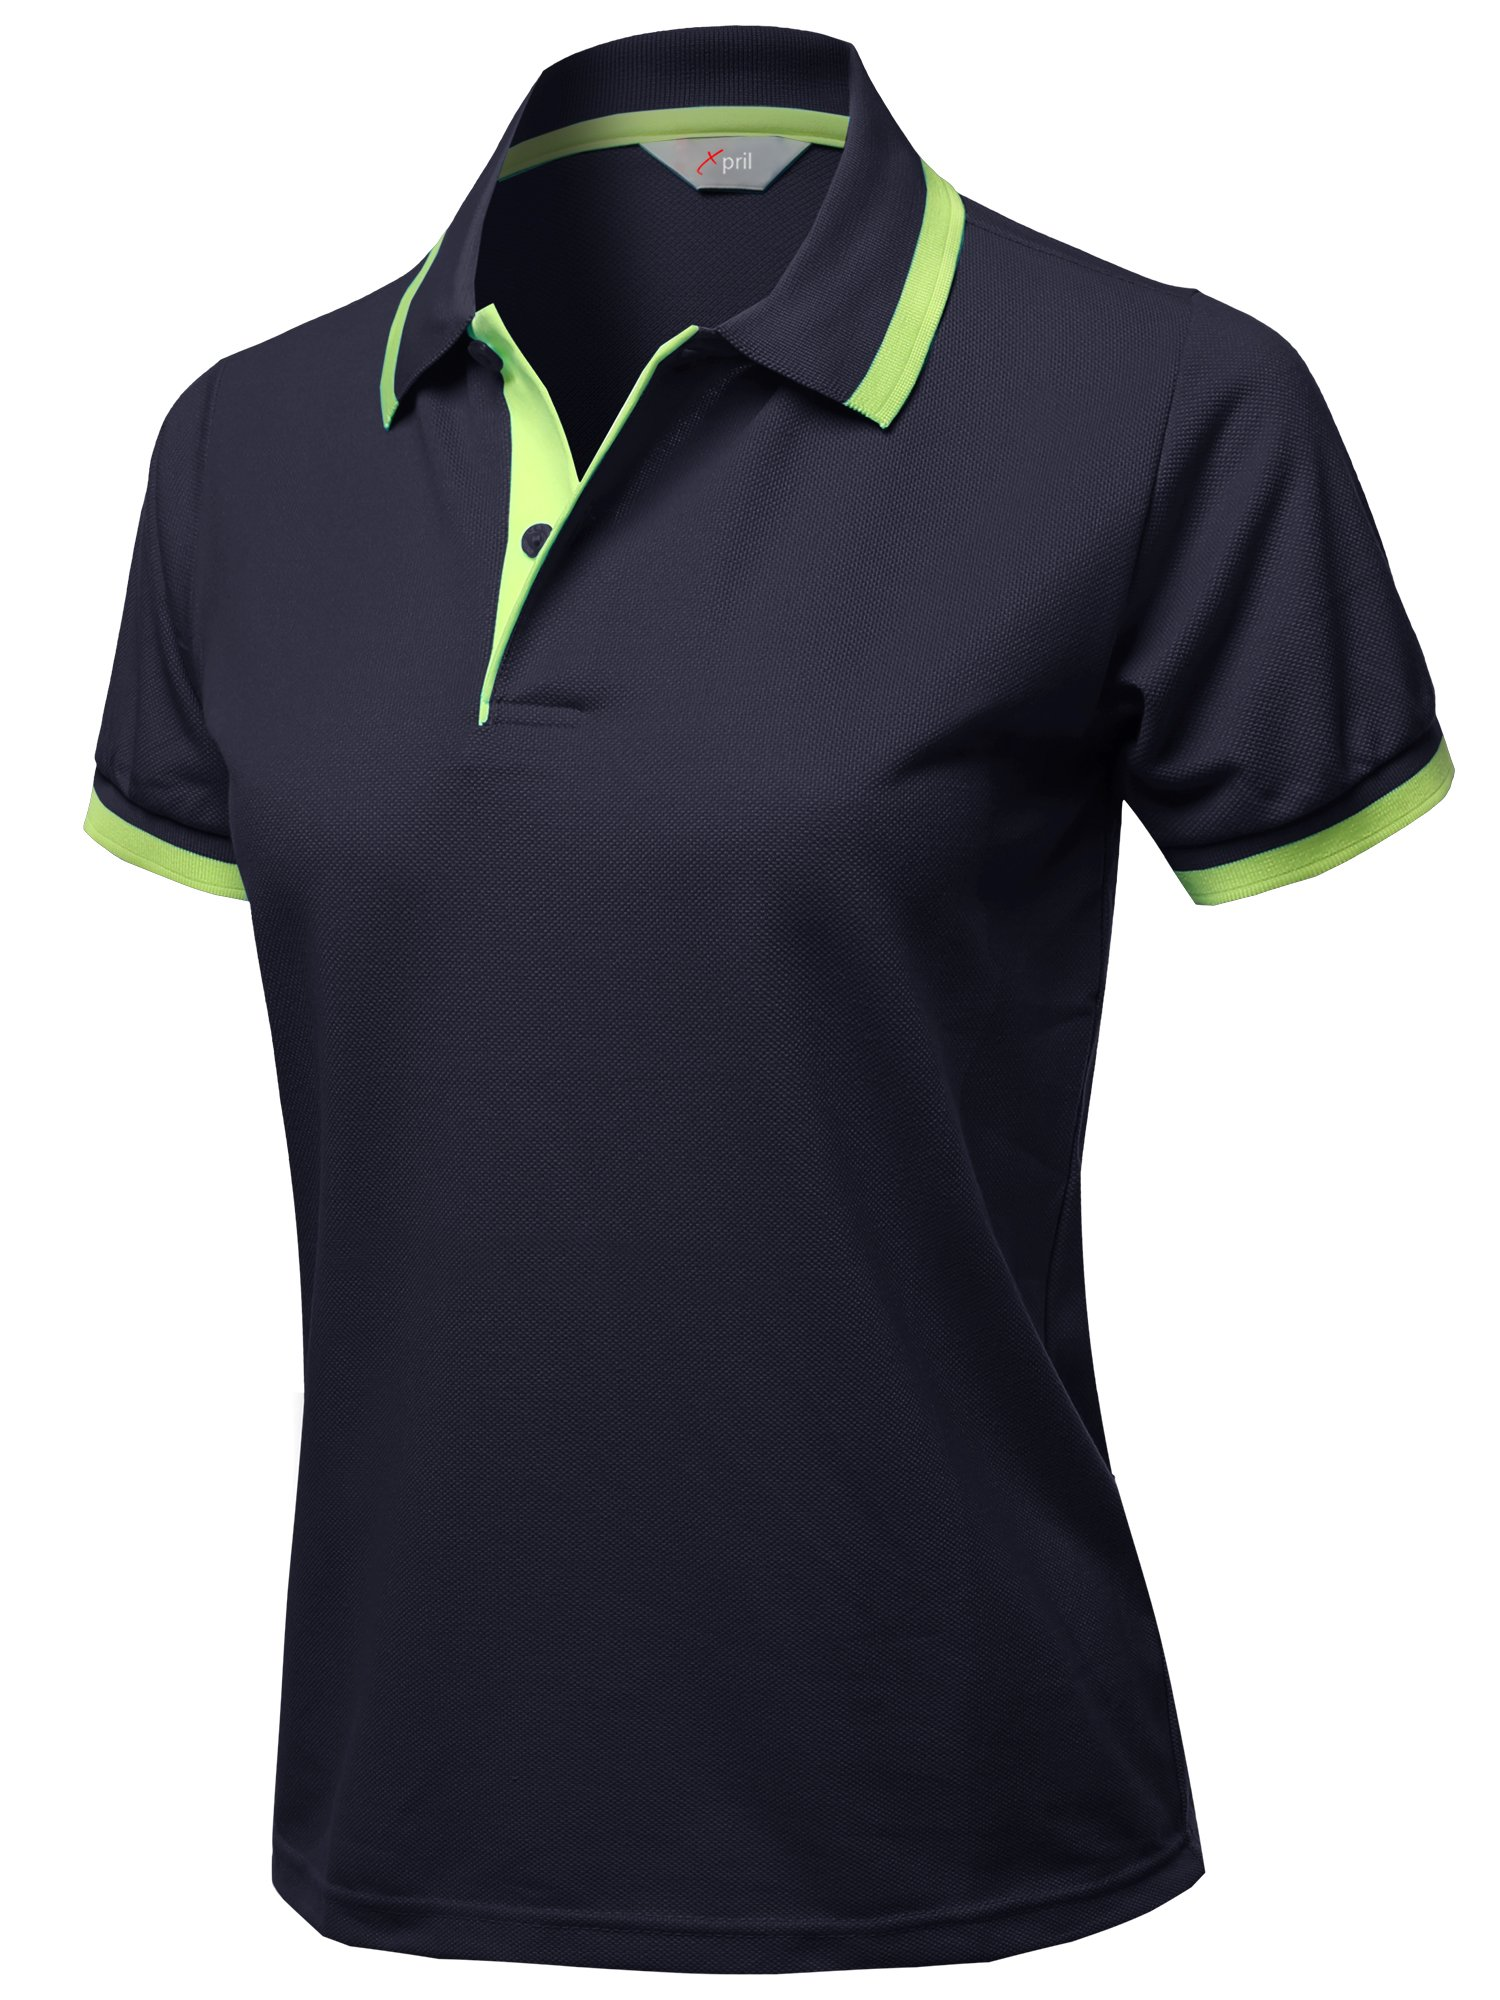 Xpril Casual Short Sleeves Contrast Color Detail Piqu?? Polo Shirts Navy Size M